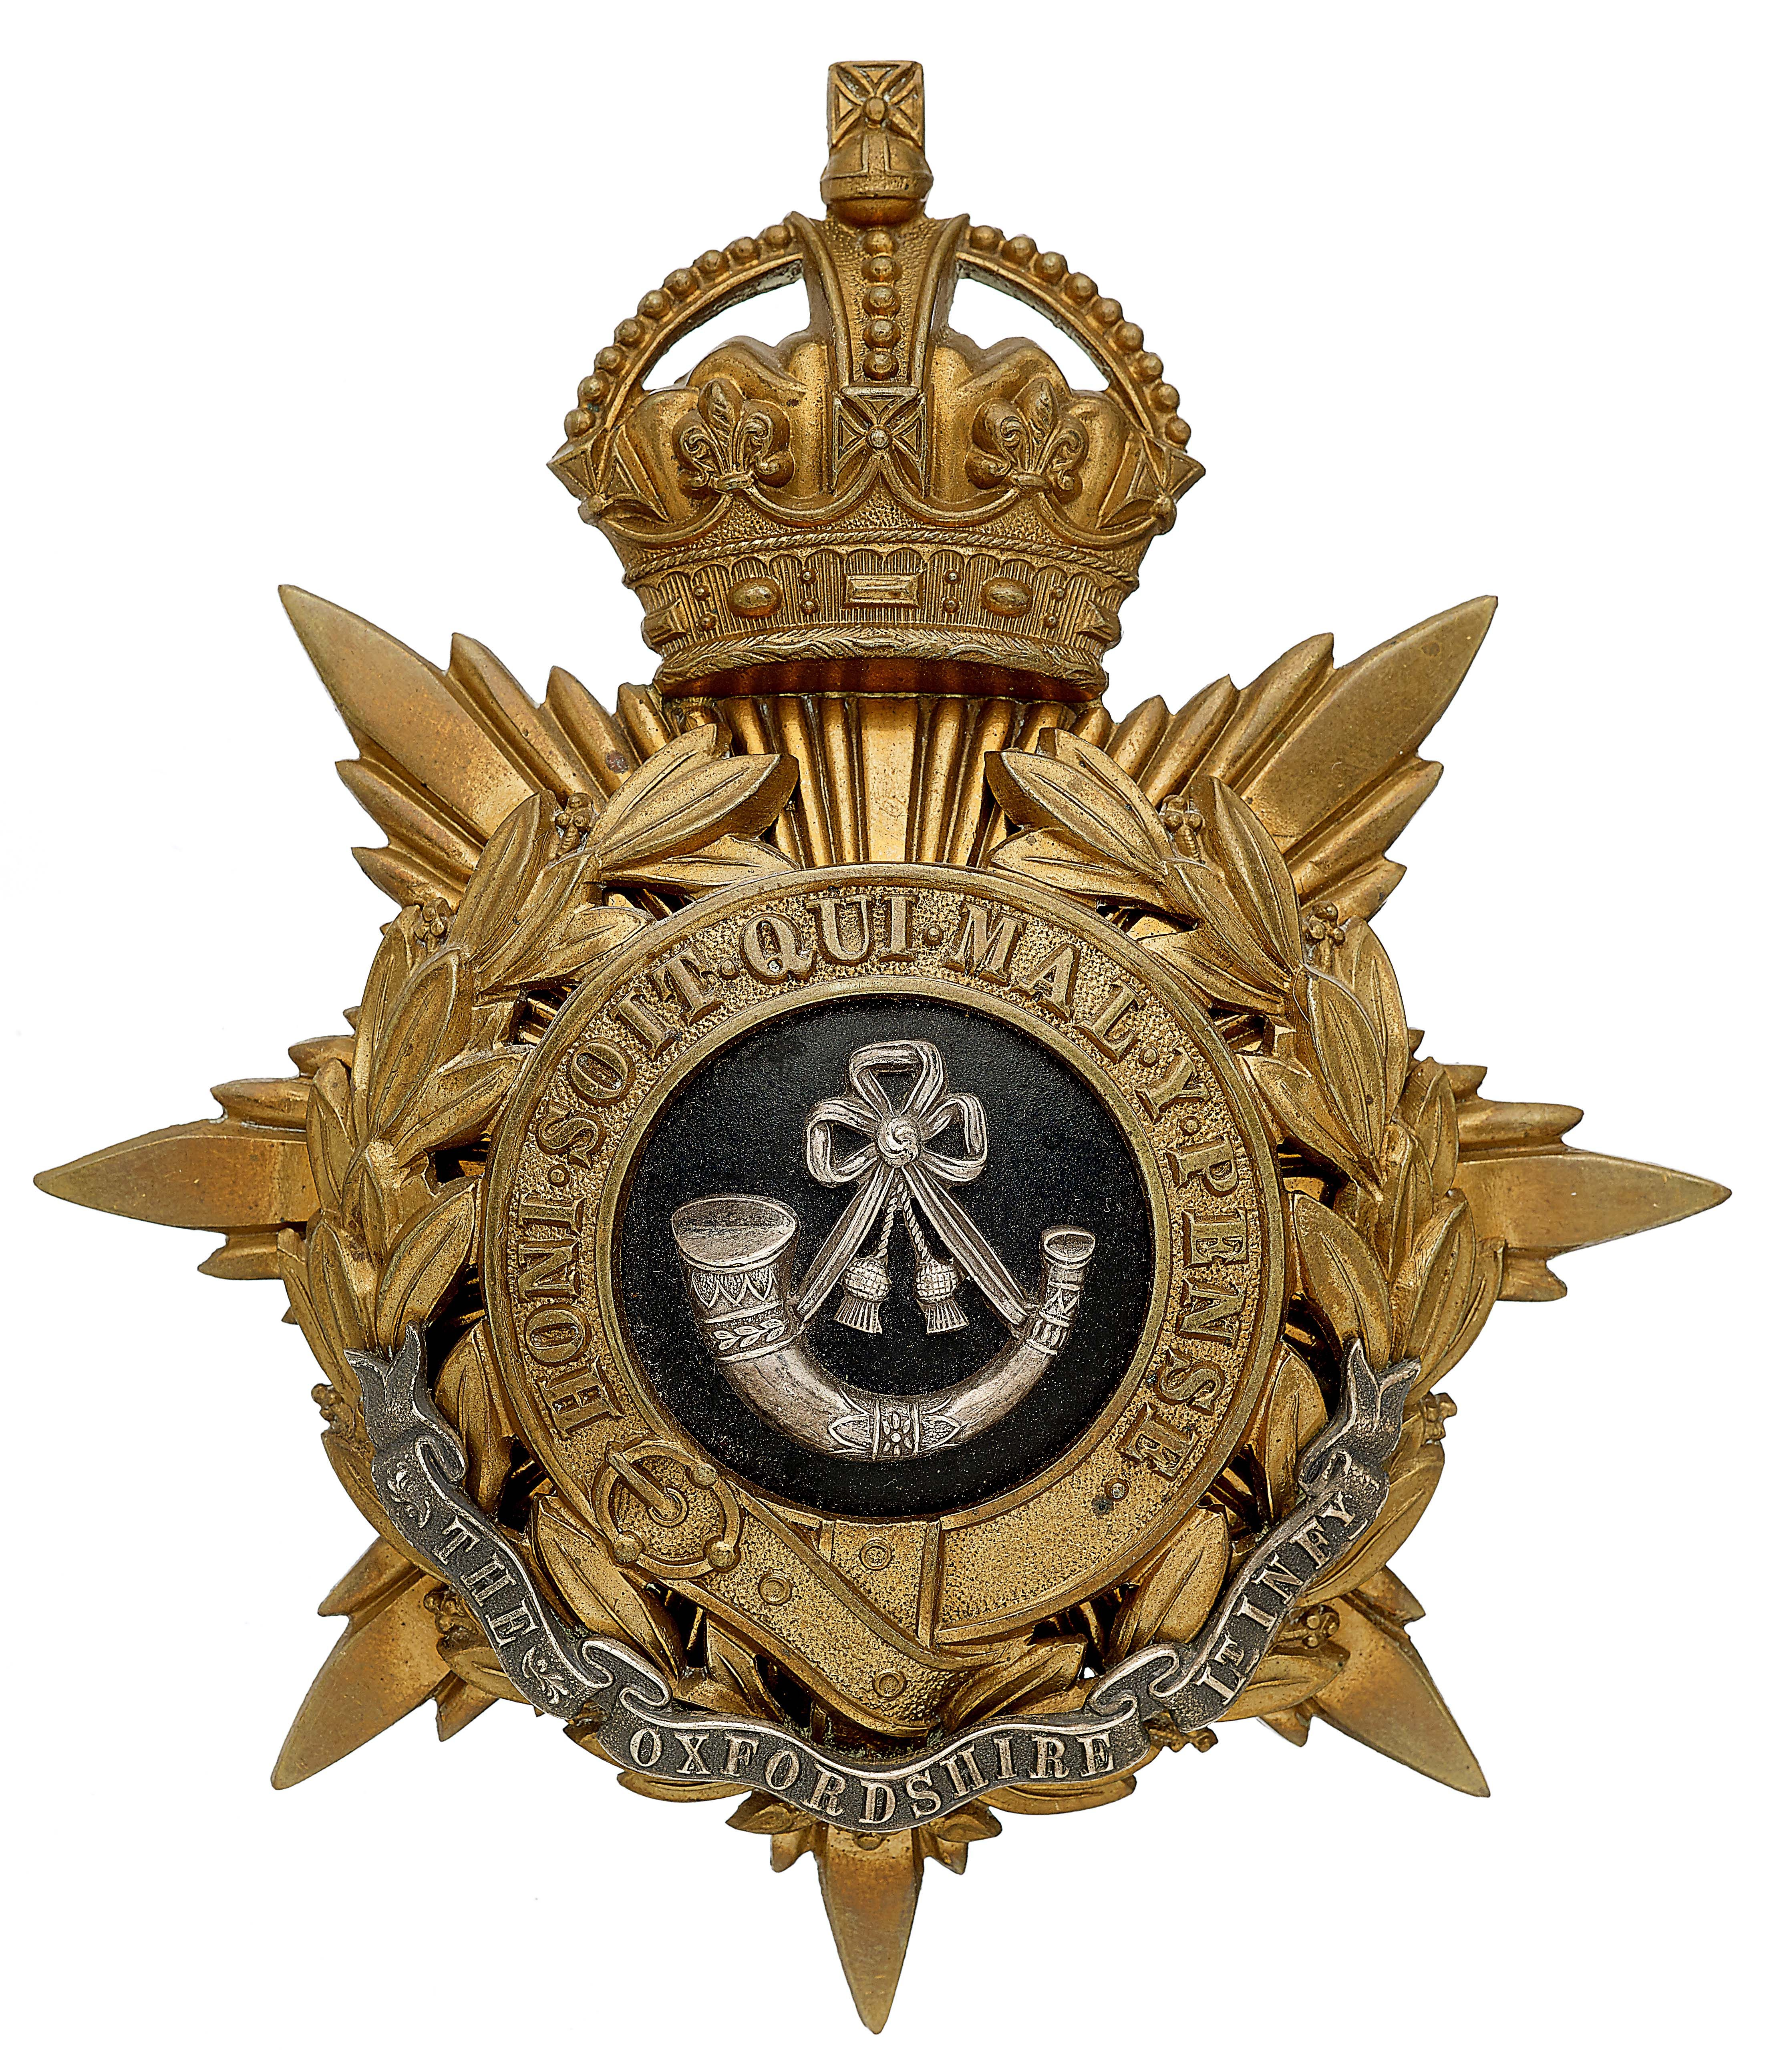 Oxfordshire and Buckinghamshire Light Infantry (43/52nd Regiments)